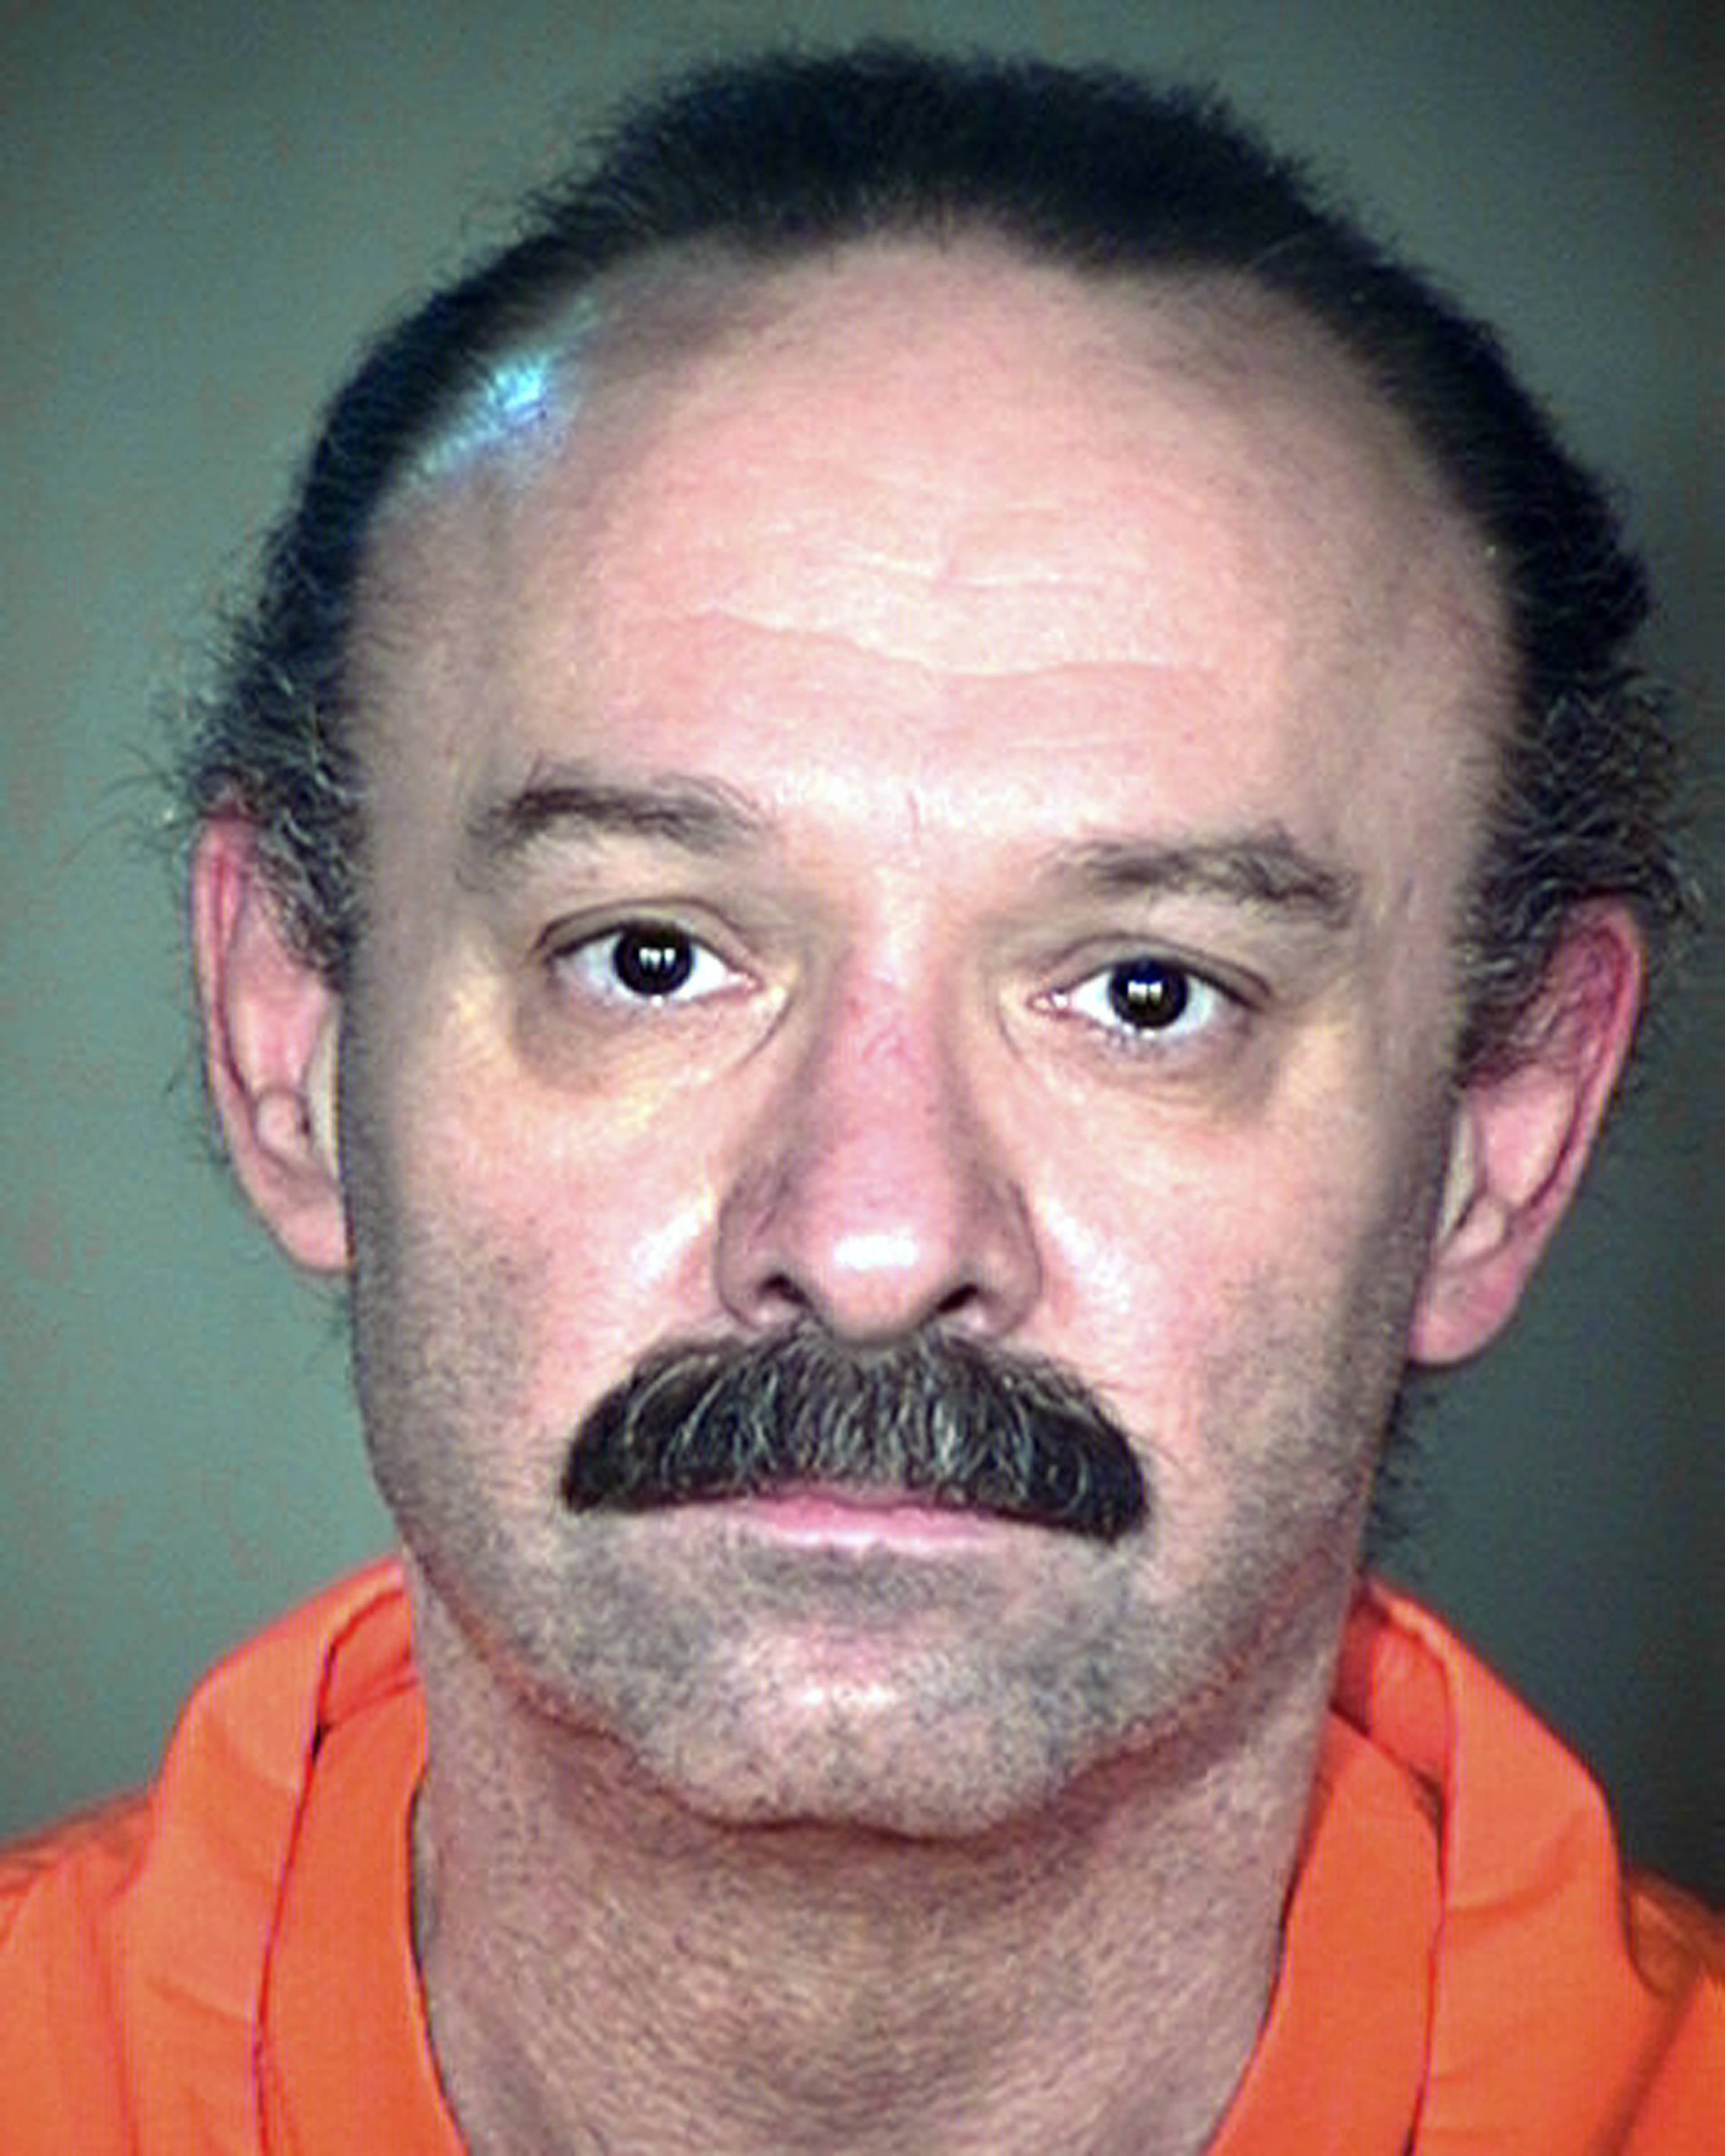 Joseph Rudolph Wood, a condemned Arizona inmate, gasped and snorted for more than an hour and a half during his execution Wednesday before he died in an episode sure to add to the scrutiny surrounding the death penalty in the U.S.